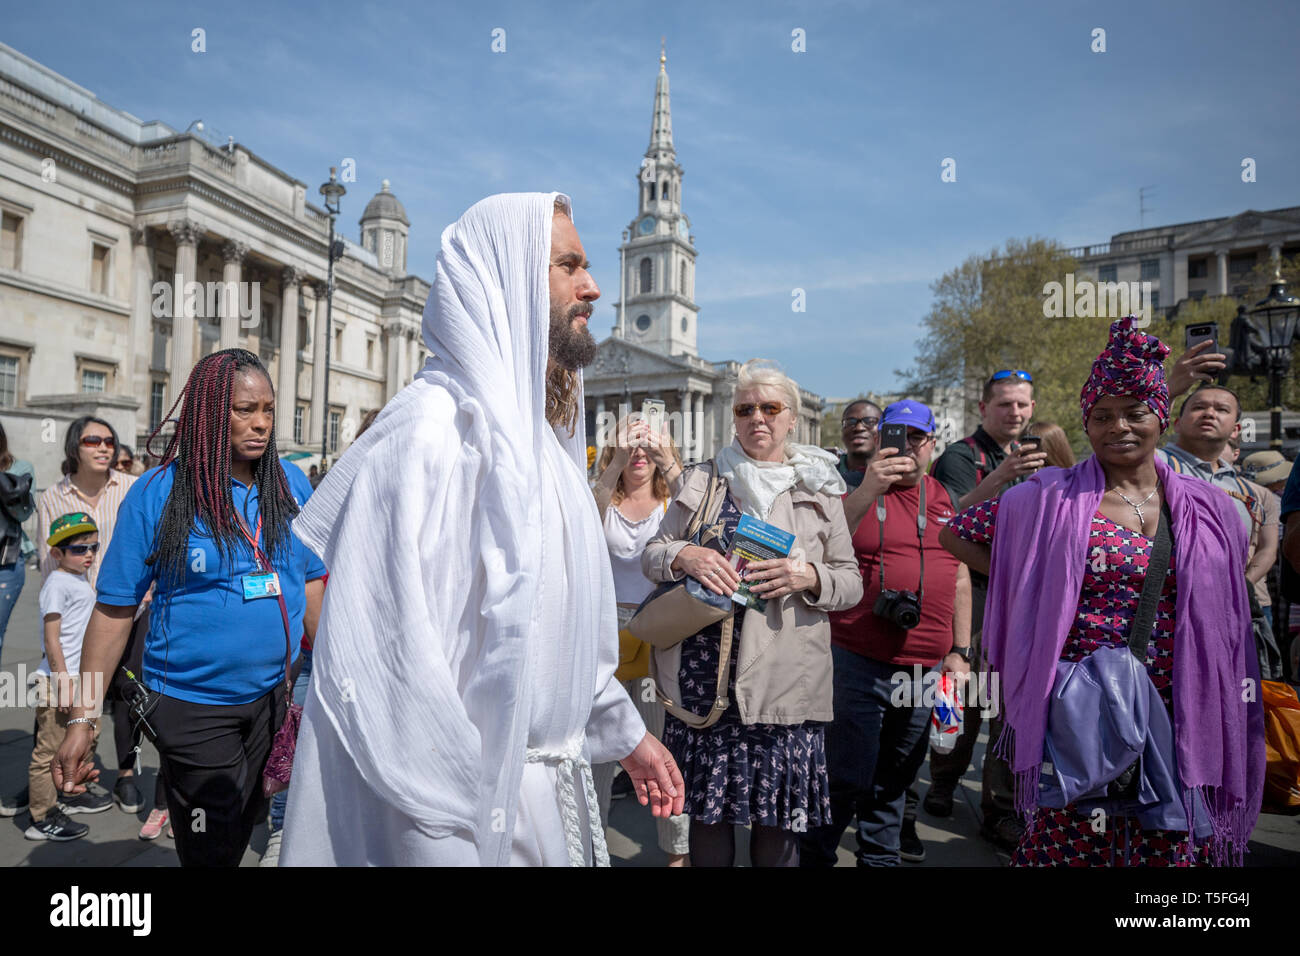 The Passion of Jesus play by the Wintershall Charitable Trust in Trafalgar Square on Good Friday, London, UK - Stock Image